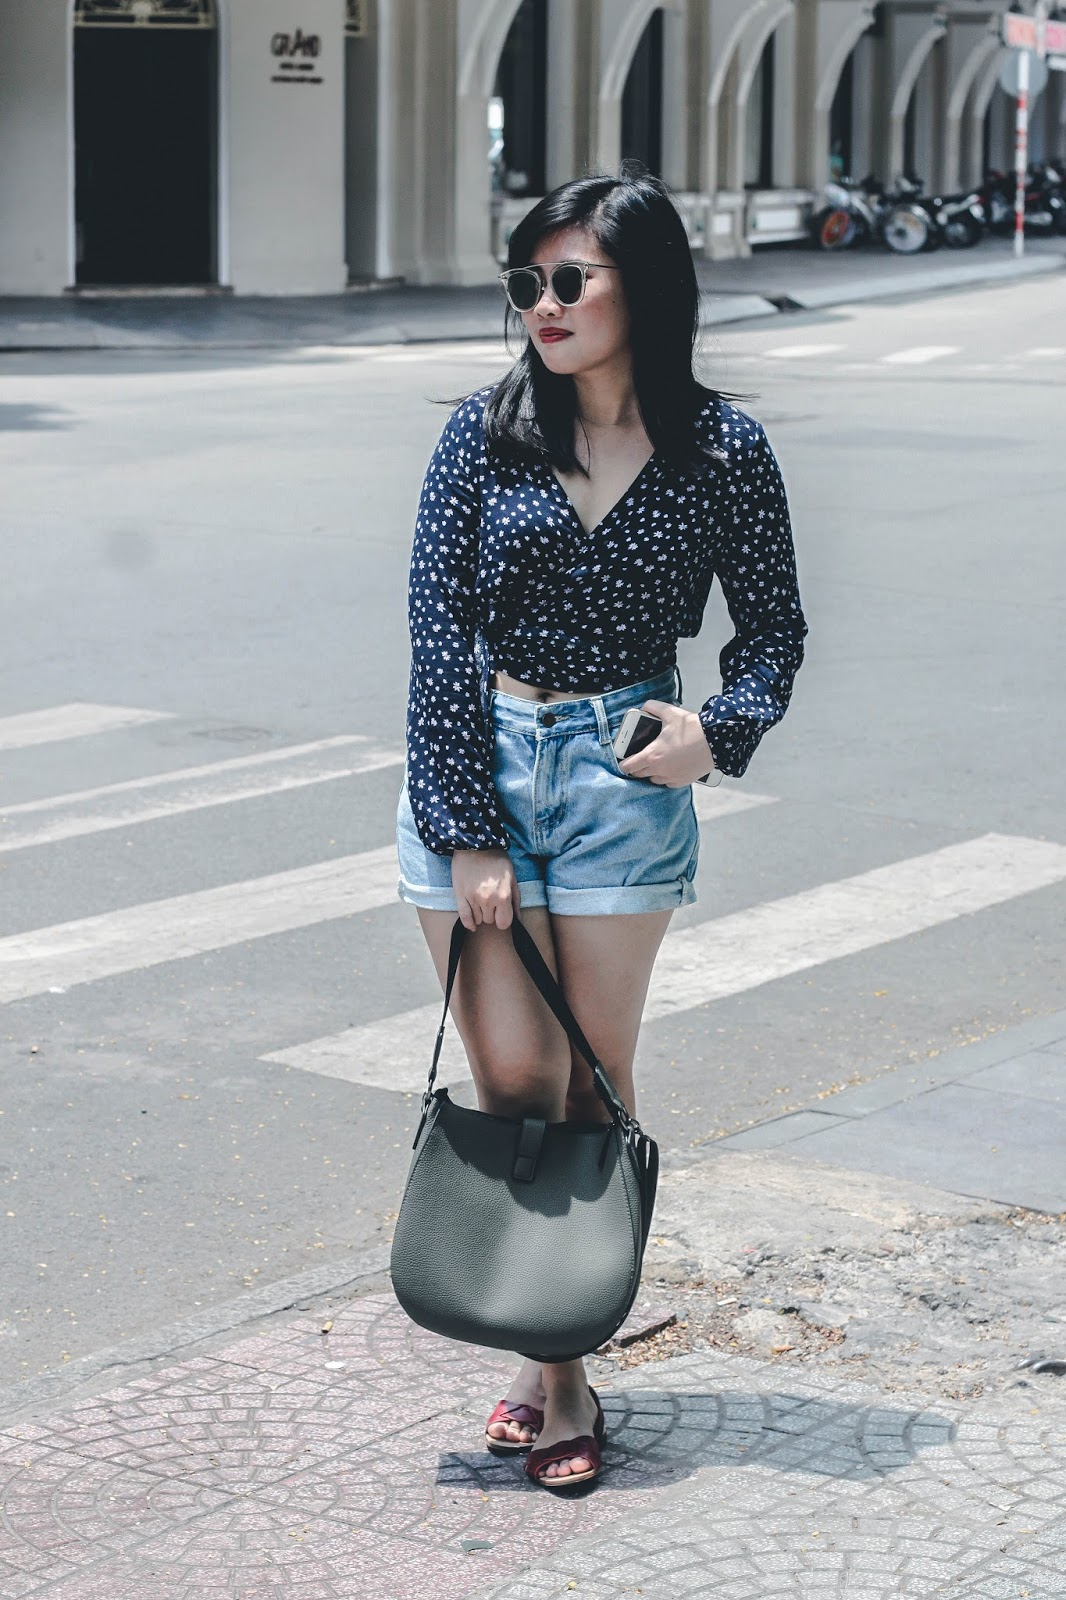 singapore blogger style stylist photographer street style look book fashion fashionista wiwt ootd stylexstyle denim the gentle monster shades saigon weekend trip vietnam inspiration